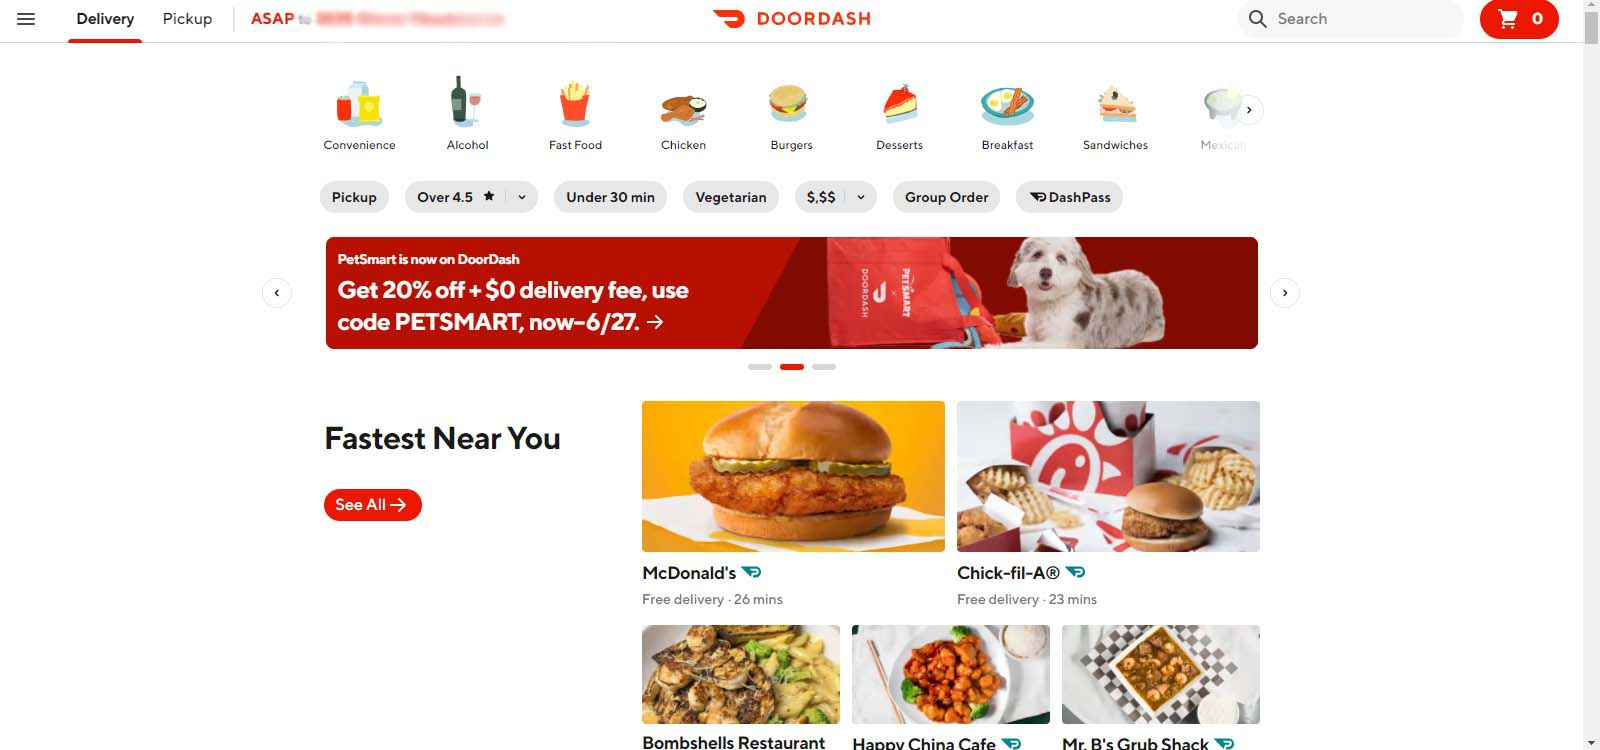 DoorDash home page after customer signs in.